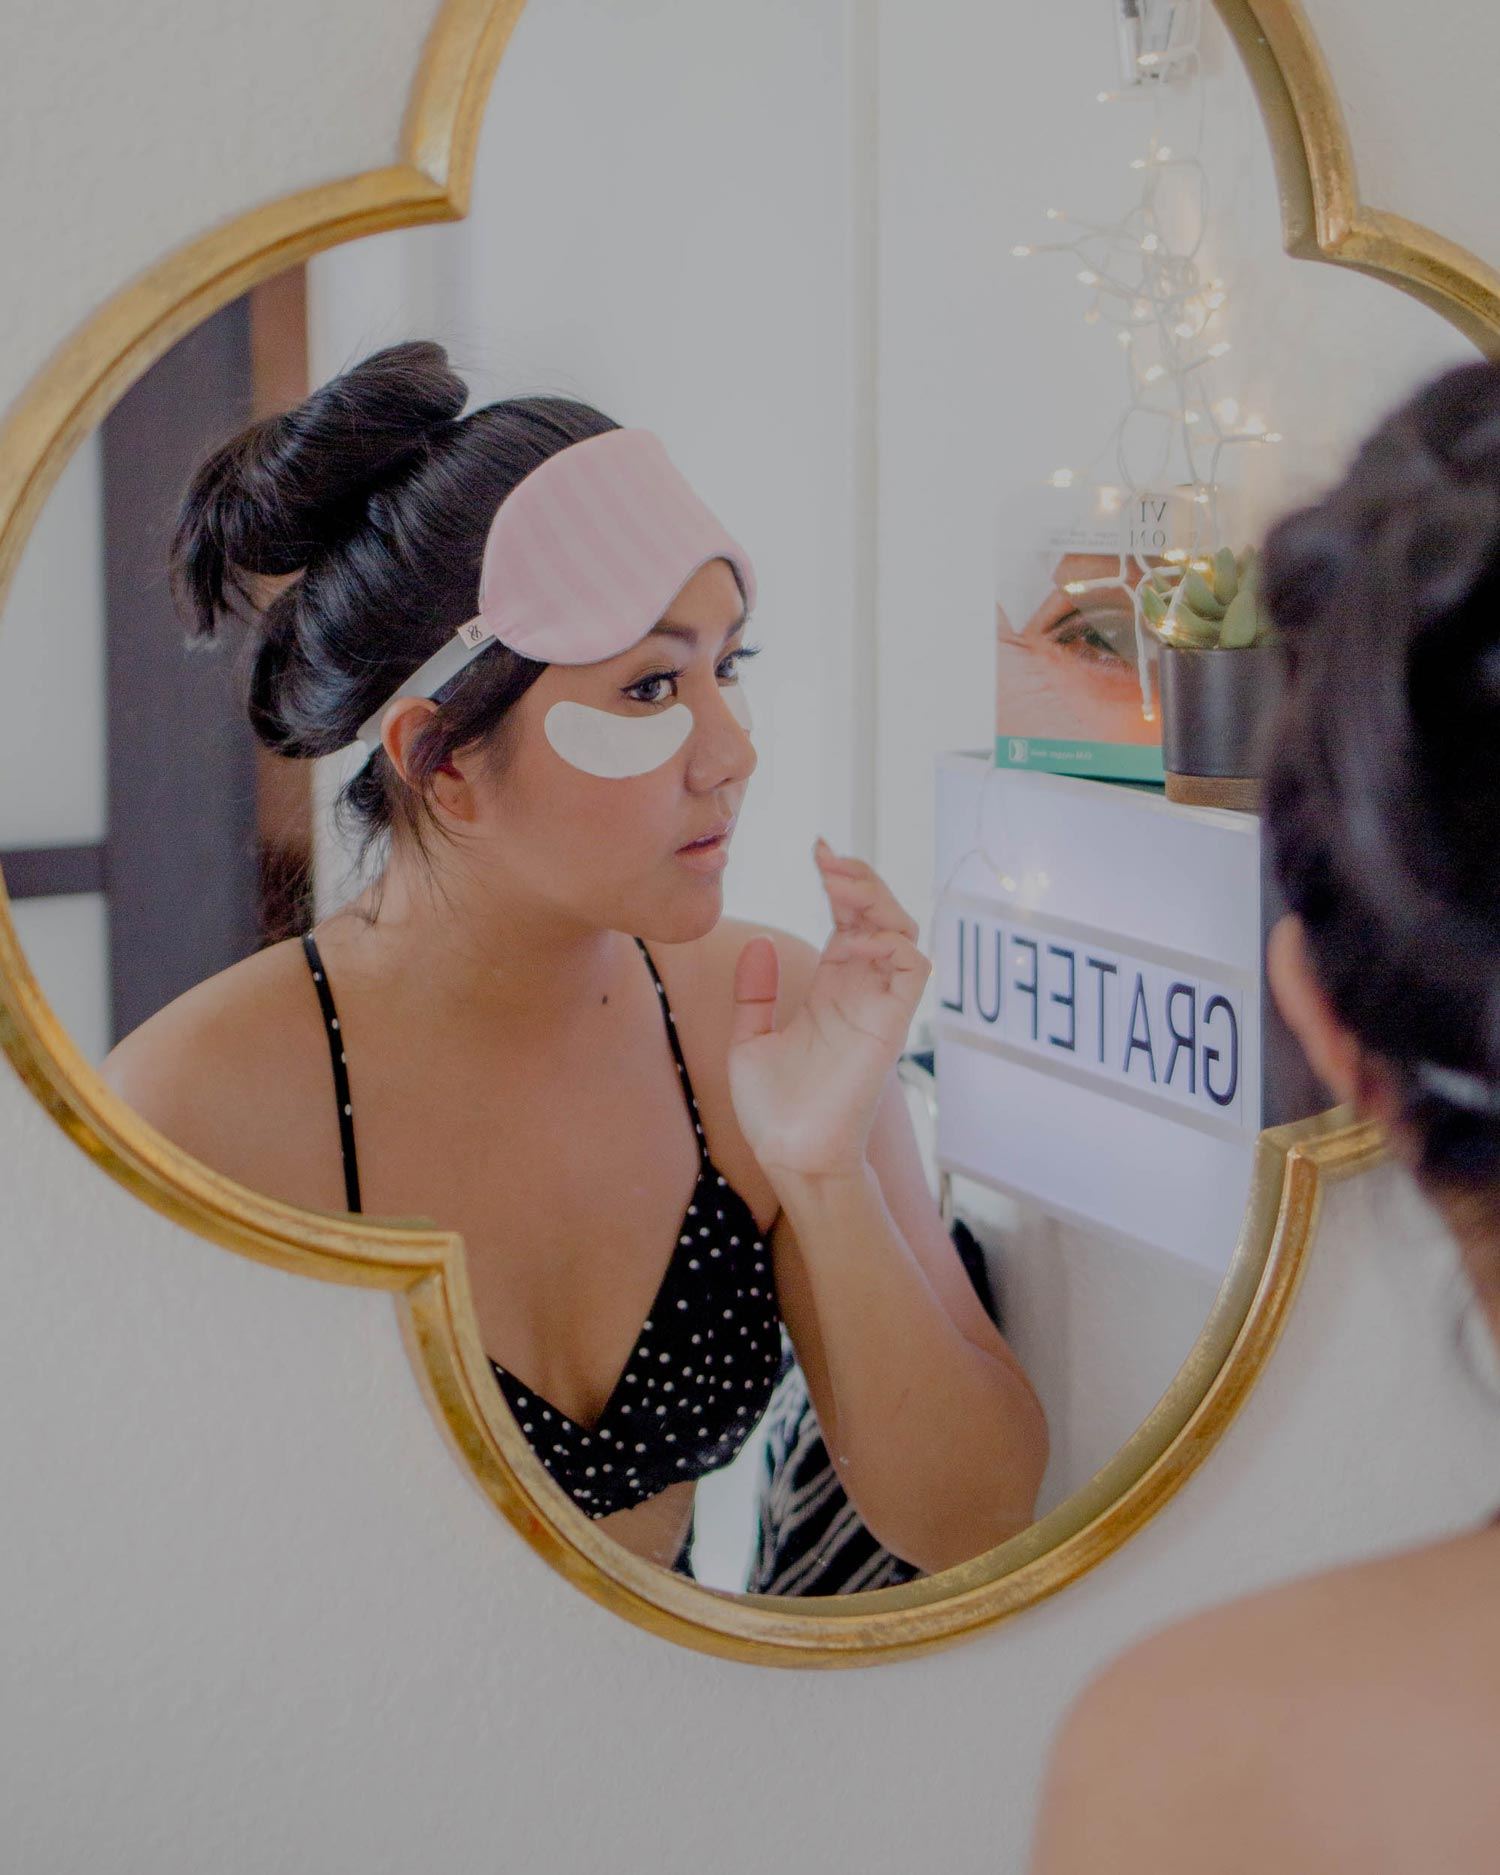 Over Night Eye Mask Review AllAboutGoodVibes.com IG @TheVibesCloset